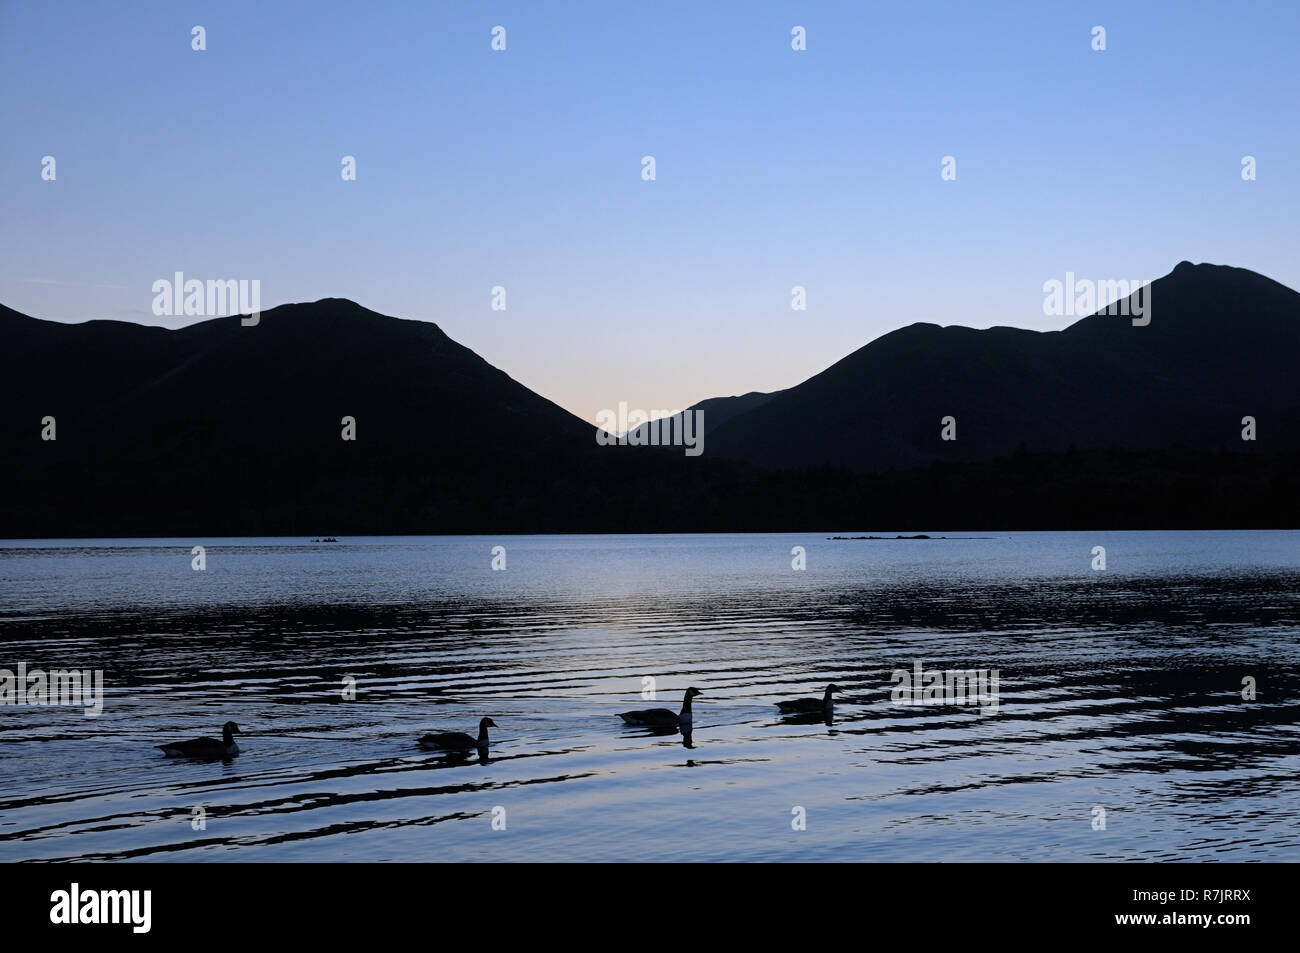 A tranquil scene at twilight showing waterfowl swimming along Derwentwater against a backdrop of Catbells and Causey Pike, Lake District, Cumbria, UK - Stock Image